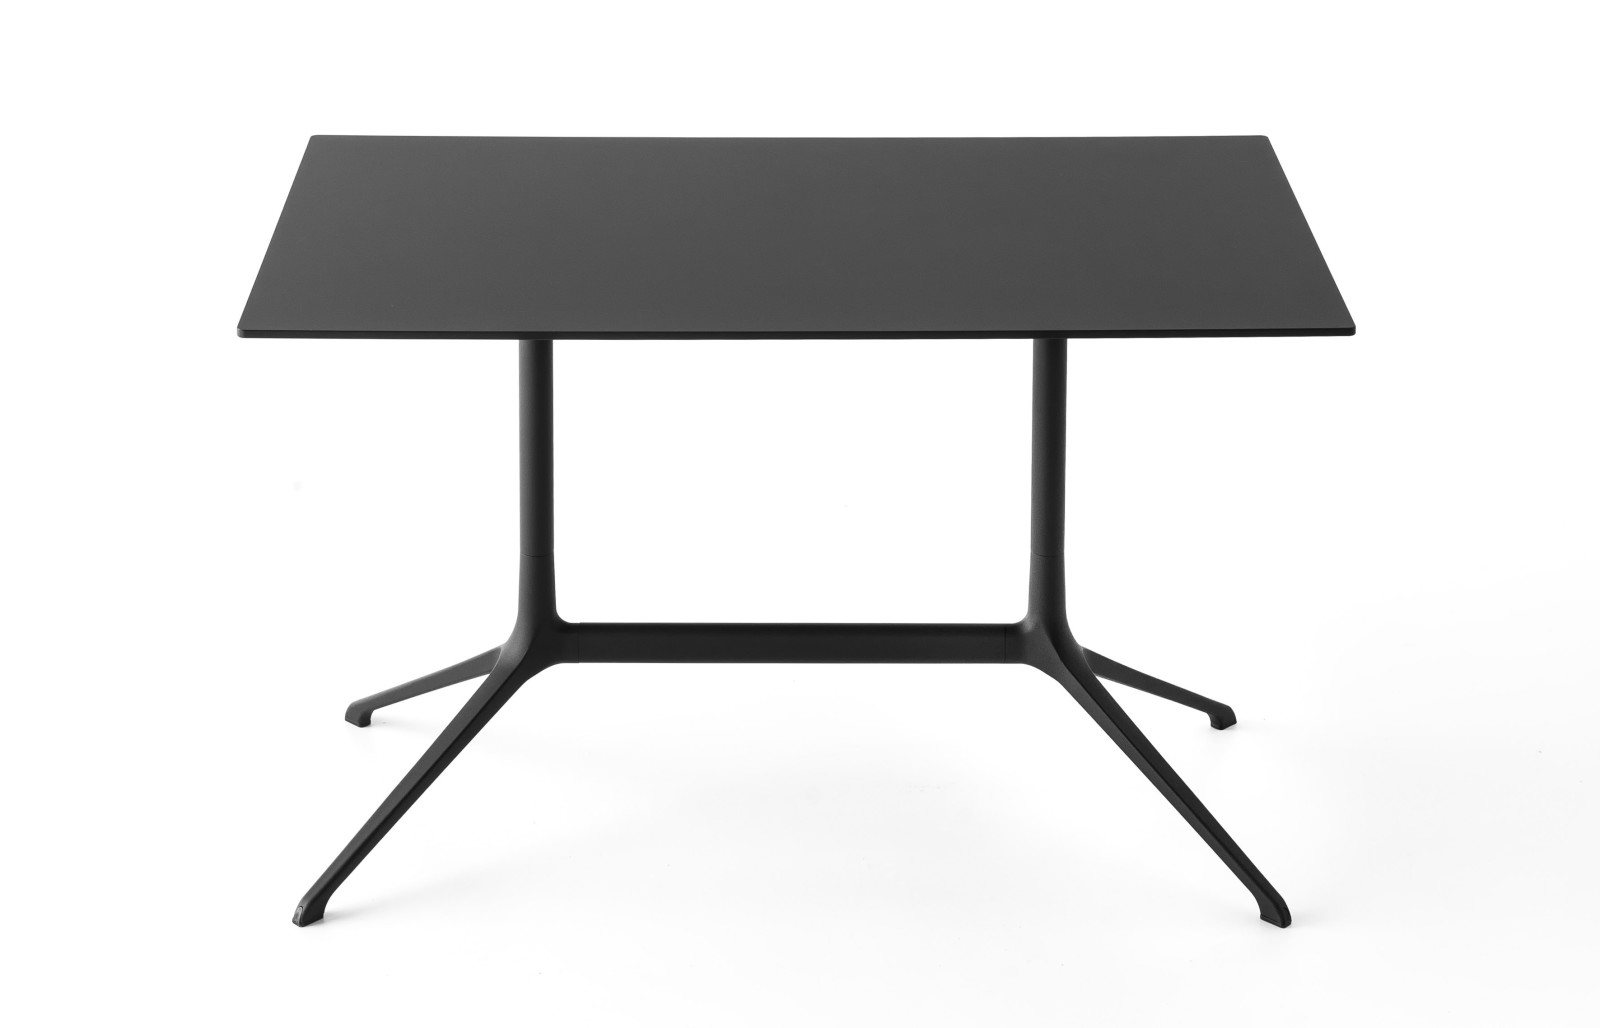 Elephant Occasional Rectangular Table - Fixed Top White, Black, 120 x 79